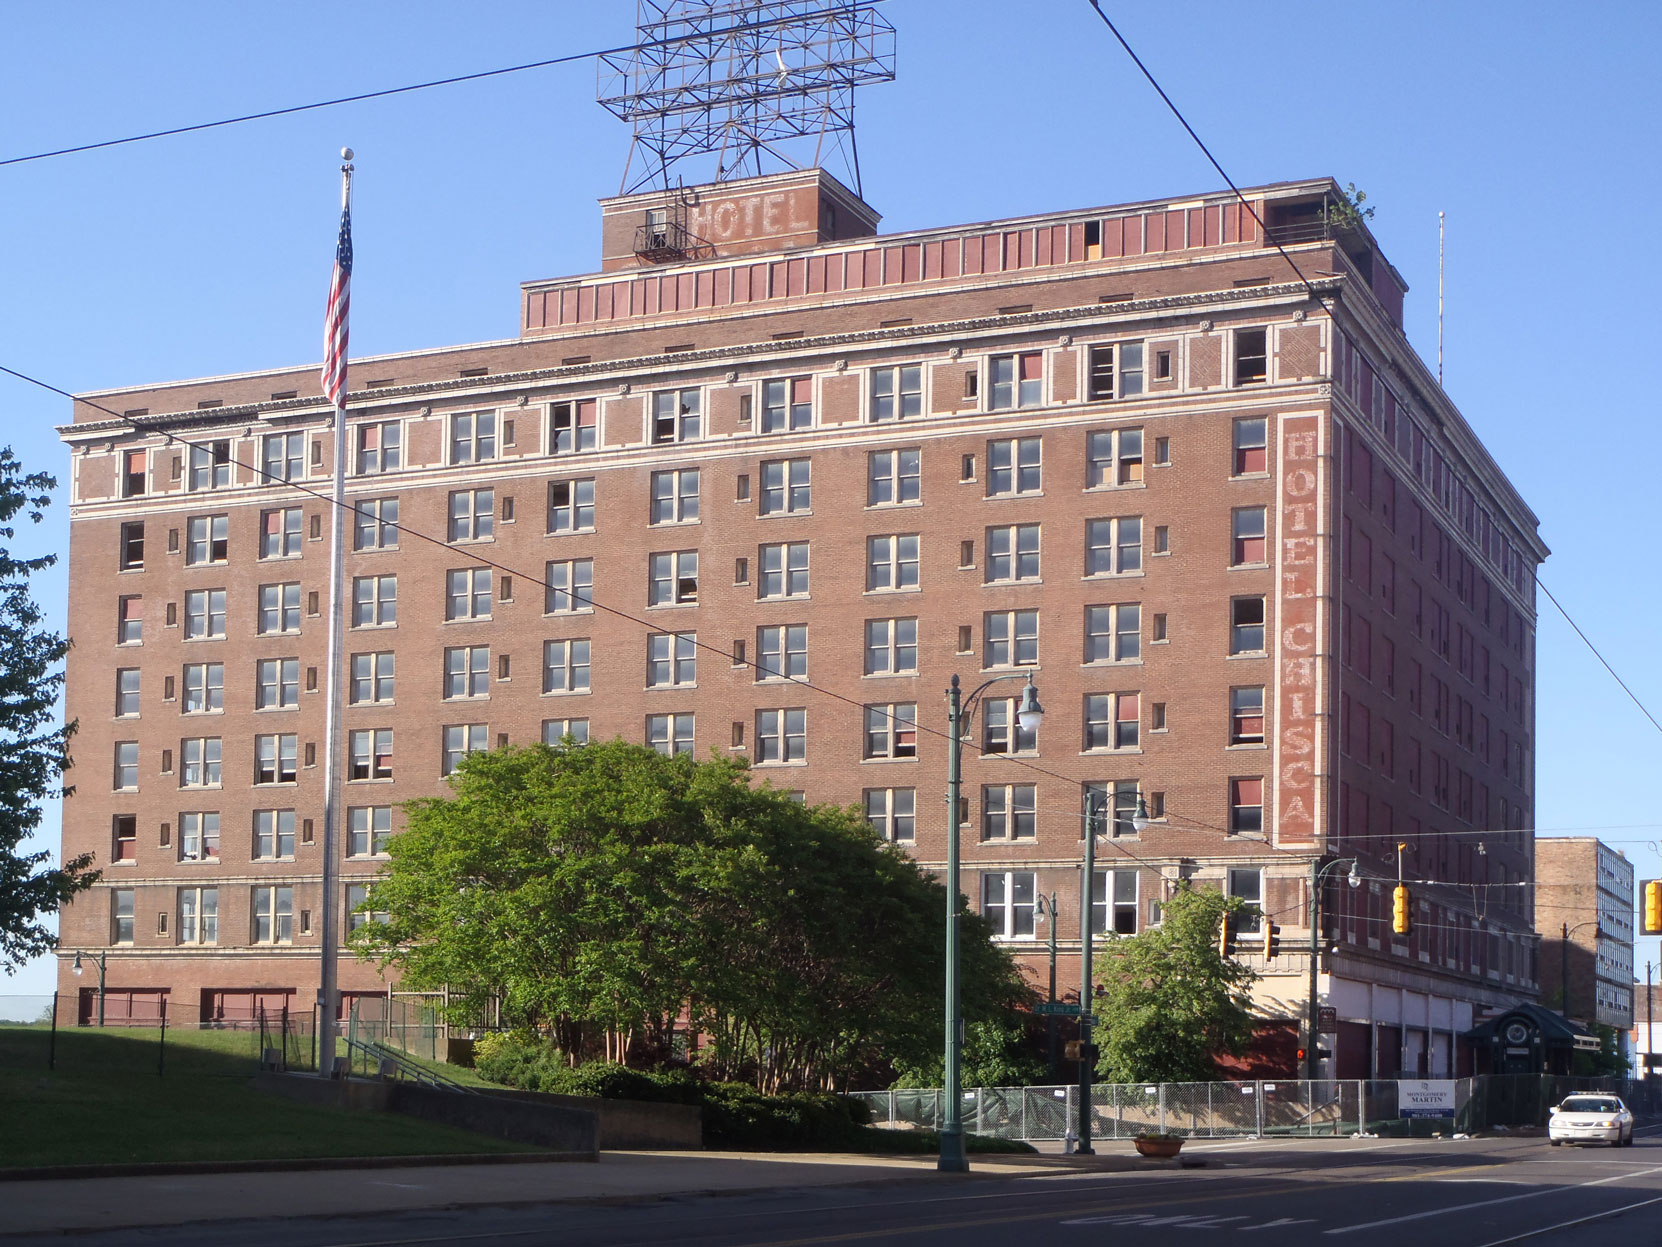 The former Hotel Chisca in downtown Memphis, 2014. (photo: Mississippi Blues Travellers)